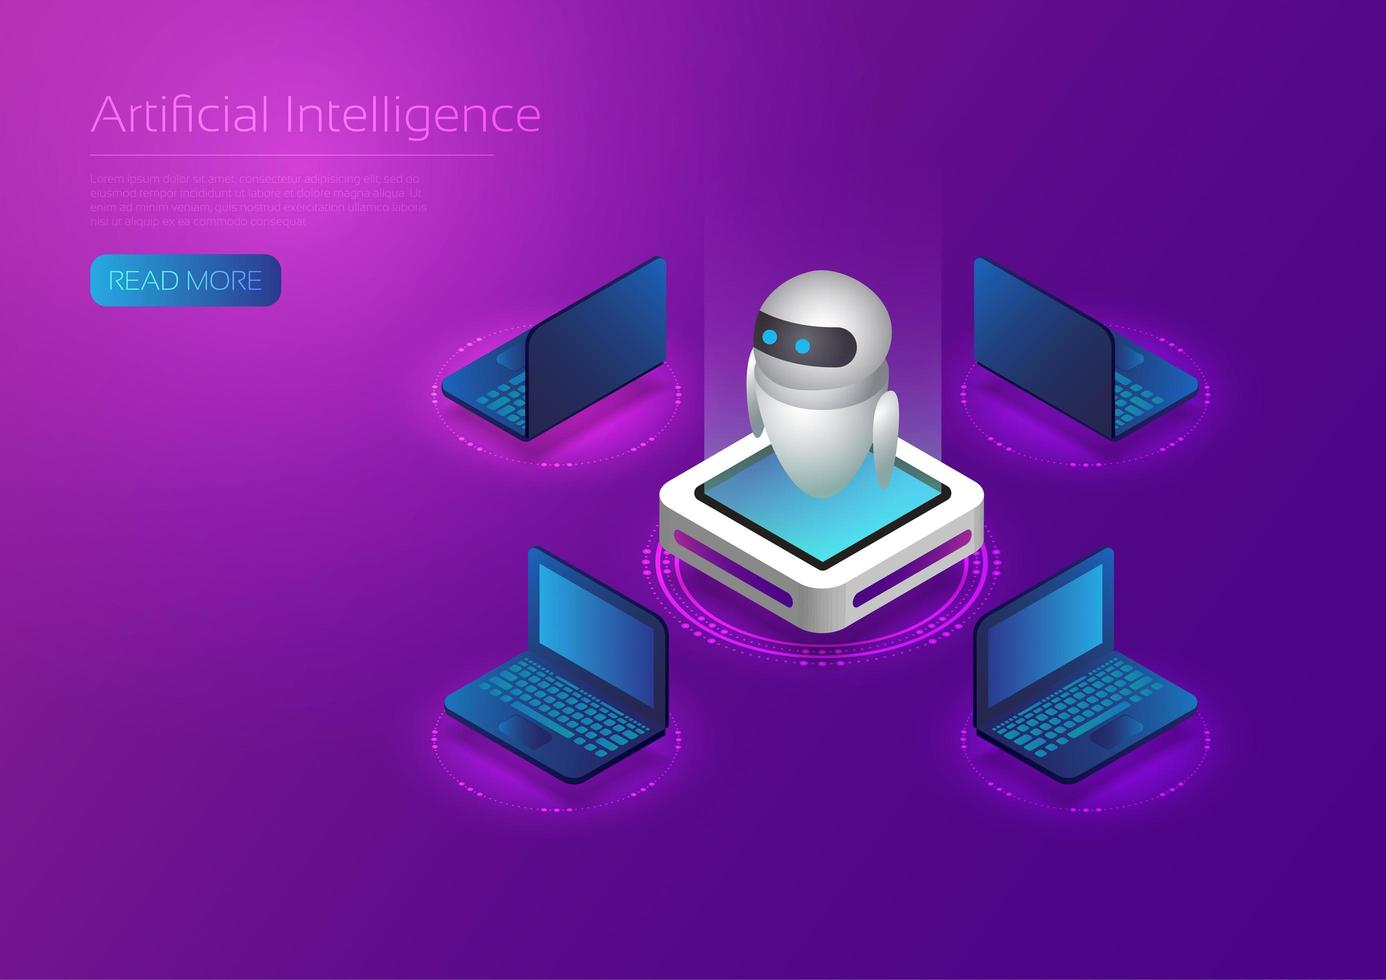 AI Technology Robot with Laptops vector